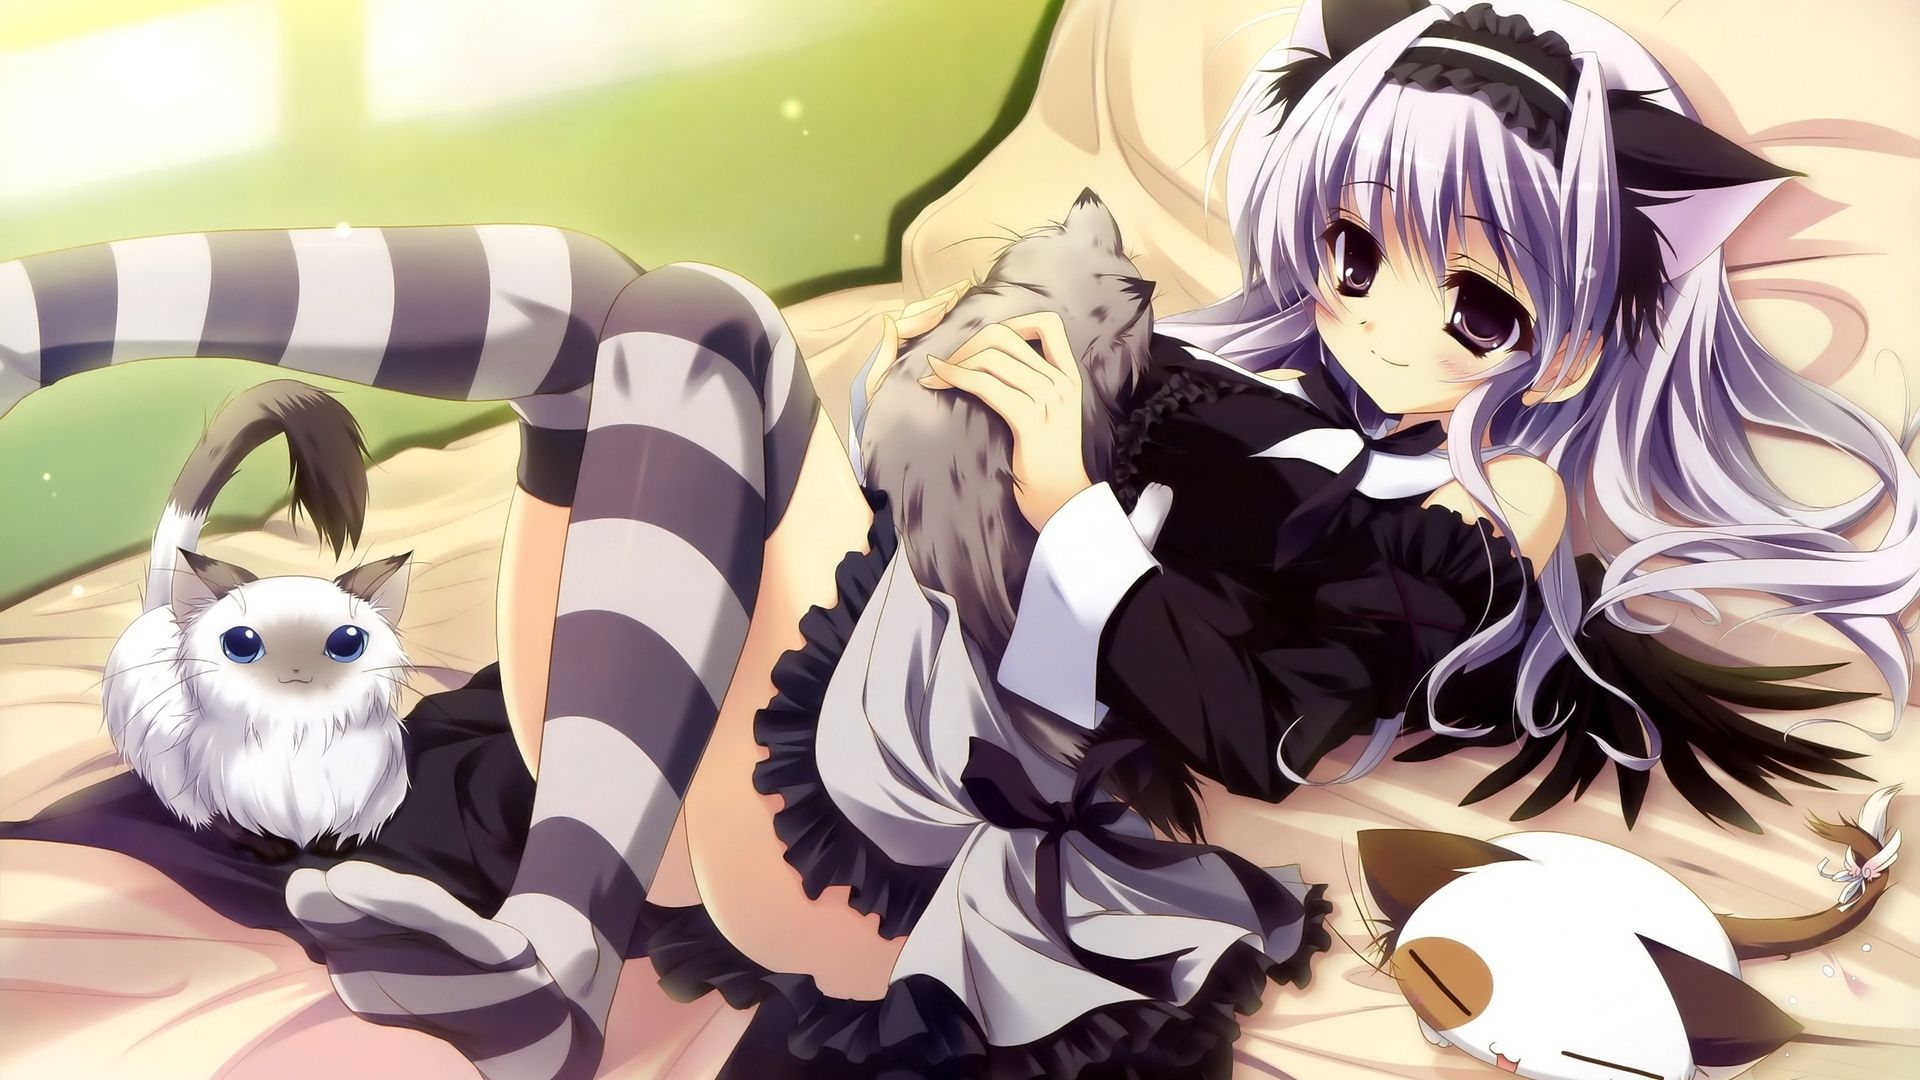 Image Icfgw In Tlkennet Anime Hd Wallpapers Album